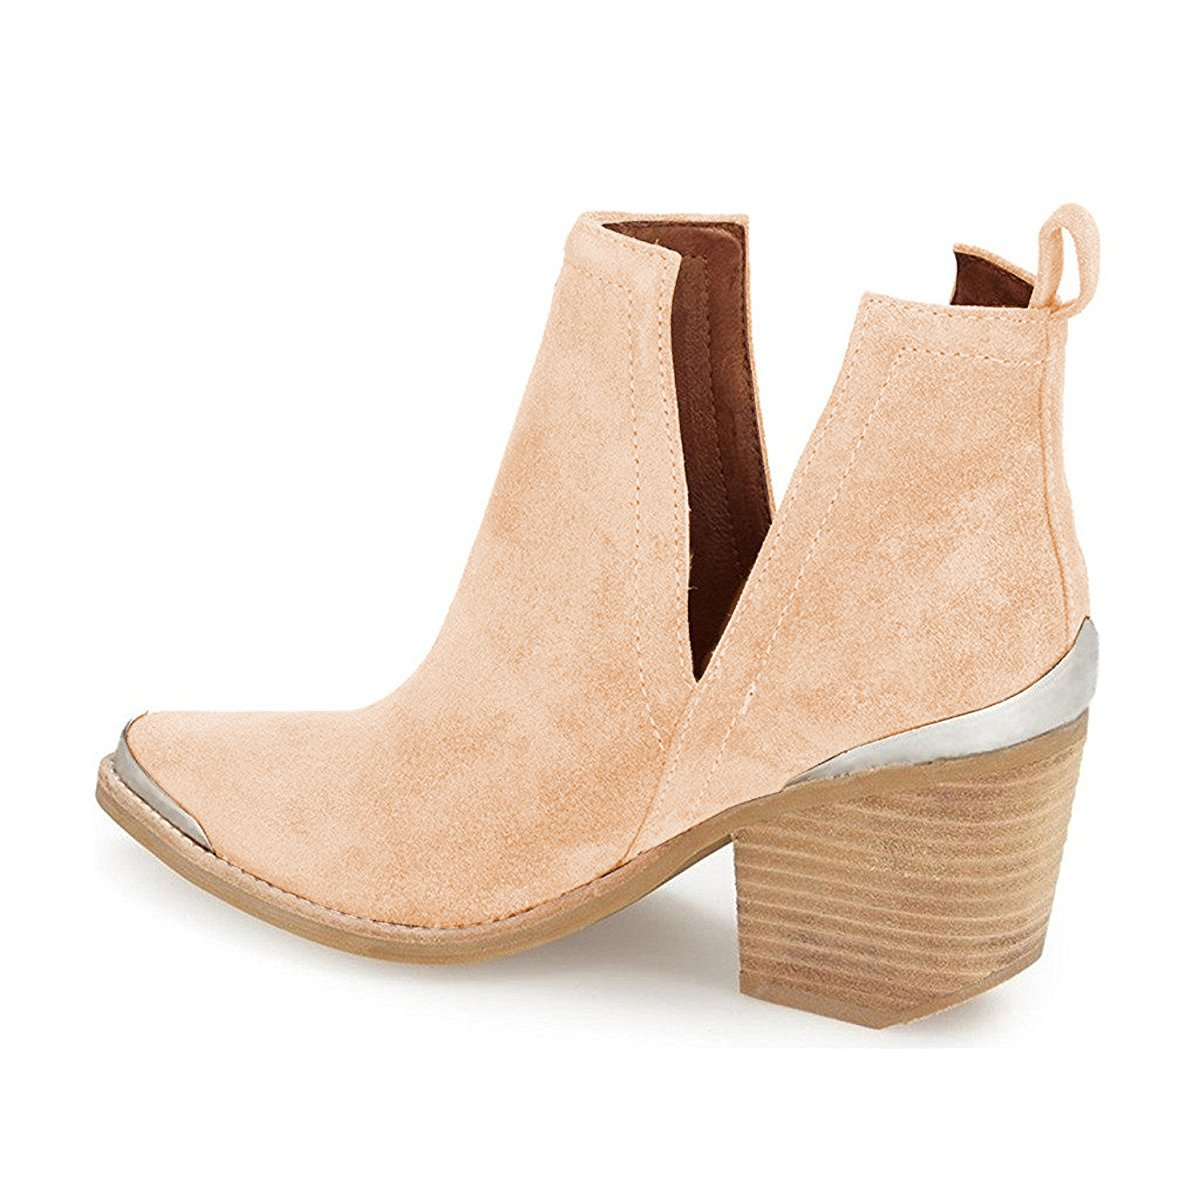 YDN Heel Women Ankle Booties Low Heel YDN Faux Suede Stacked Boots Cut Out Shoes with Metal Toe B01NCPU5FC 5 M US|Beige 098d2b